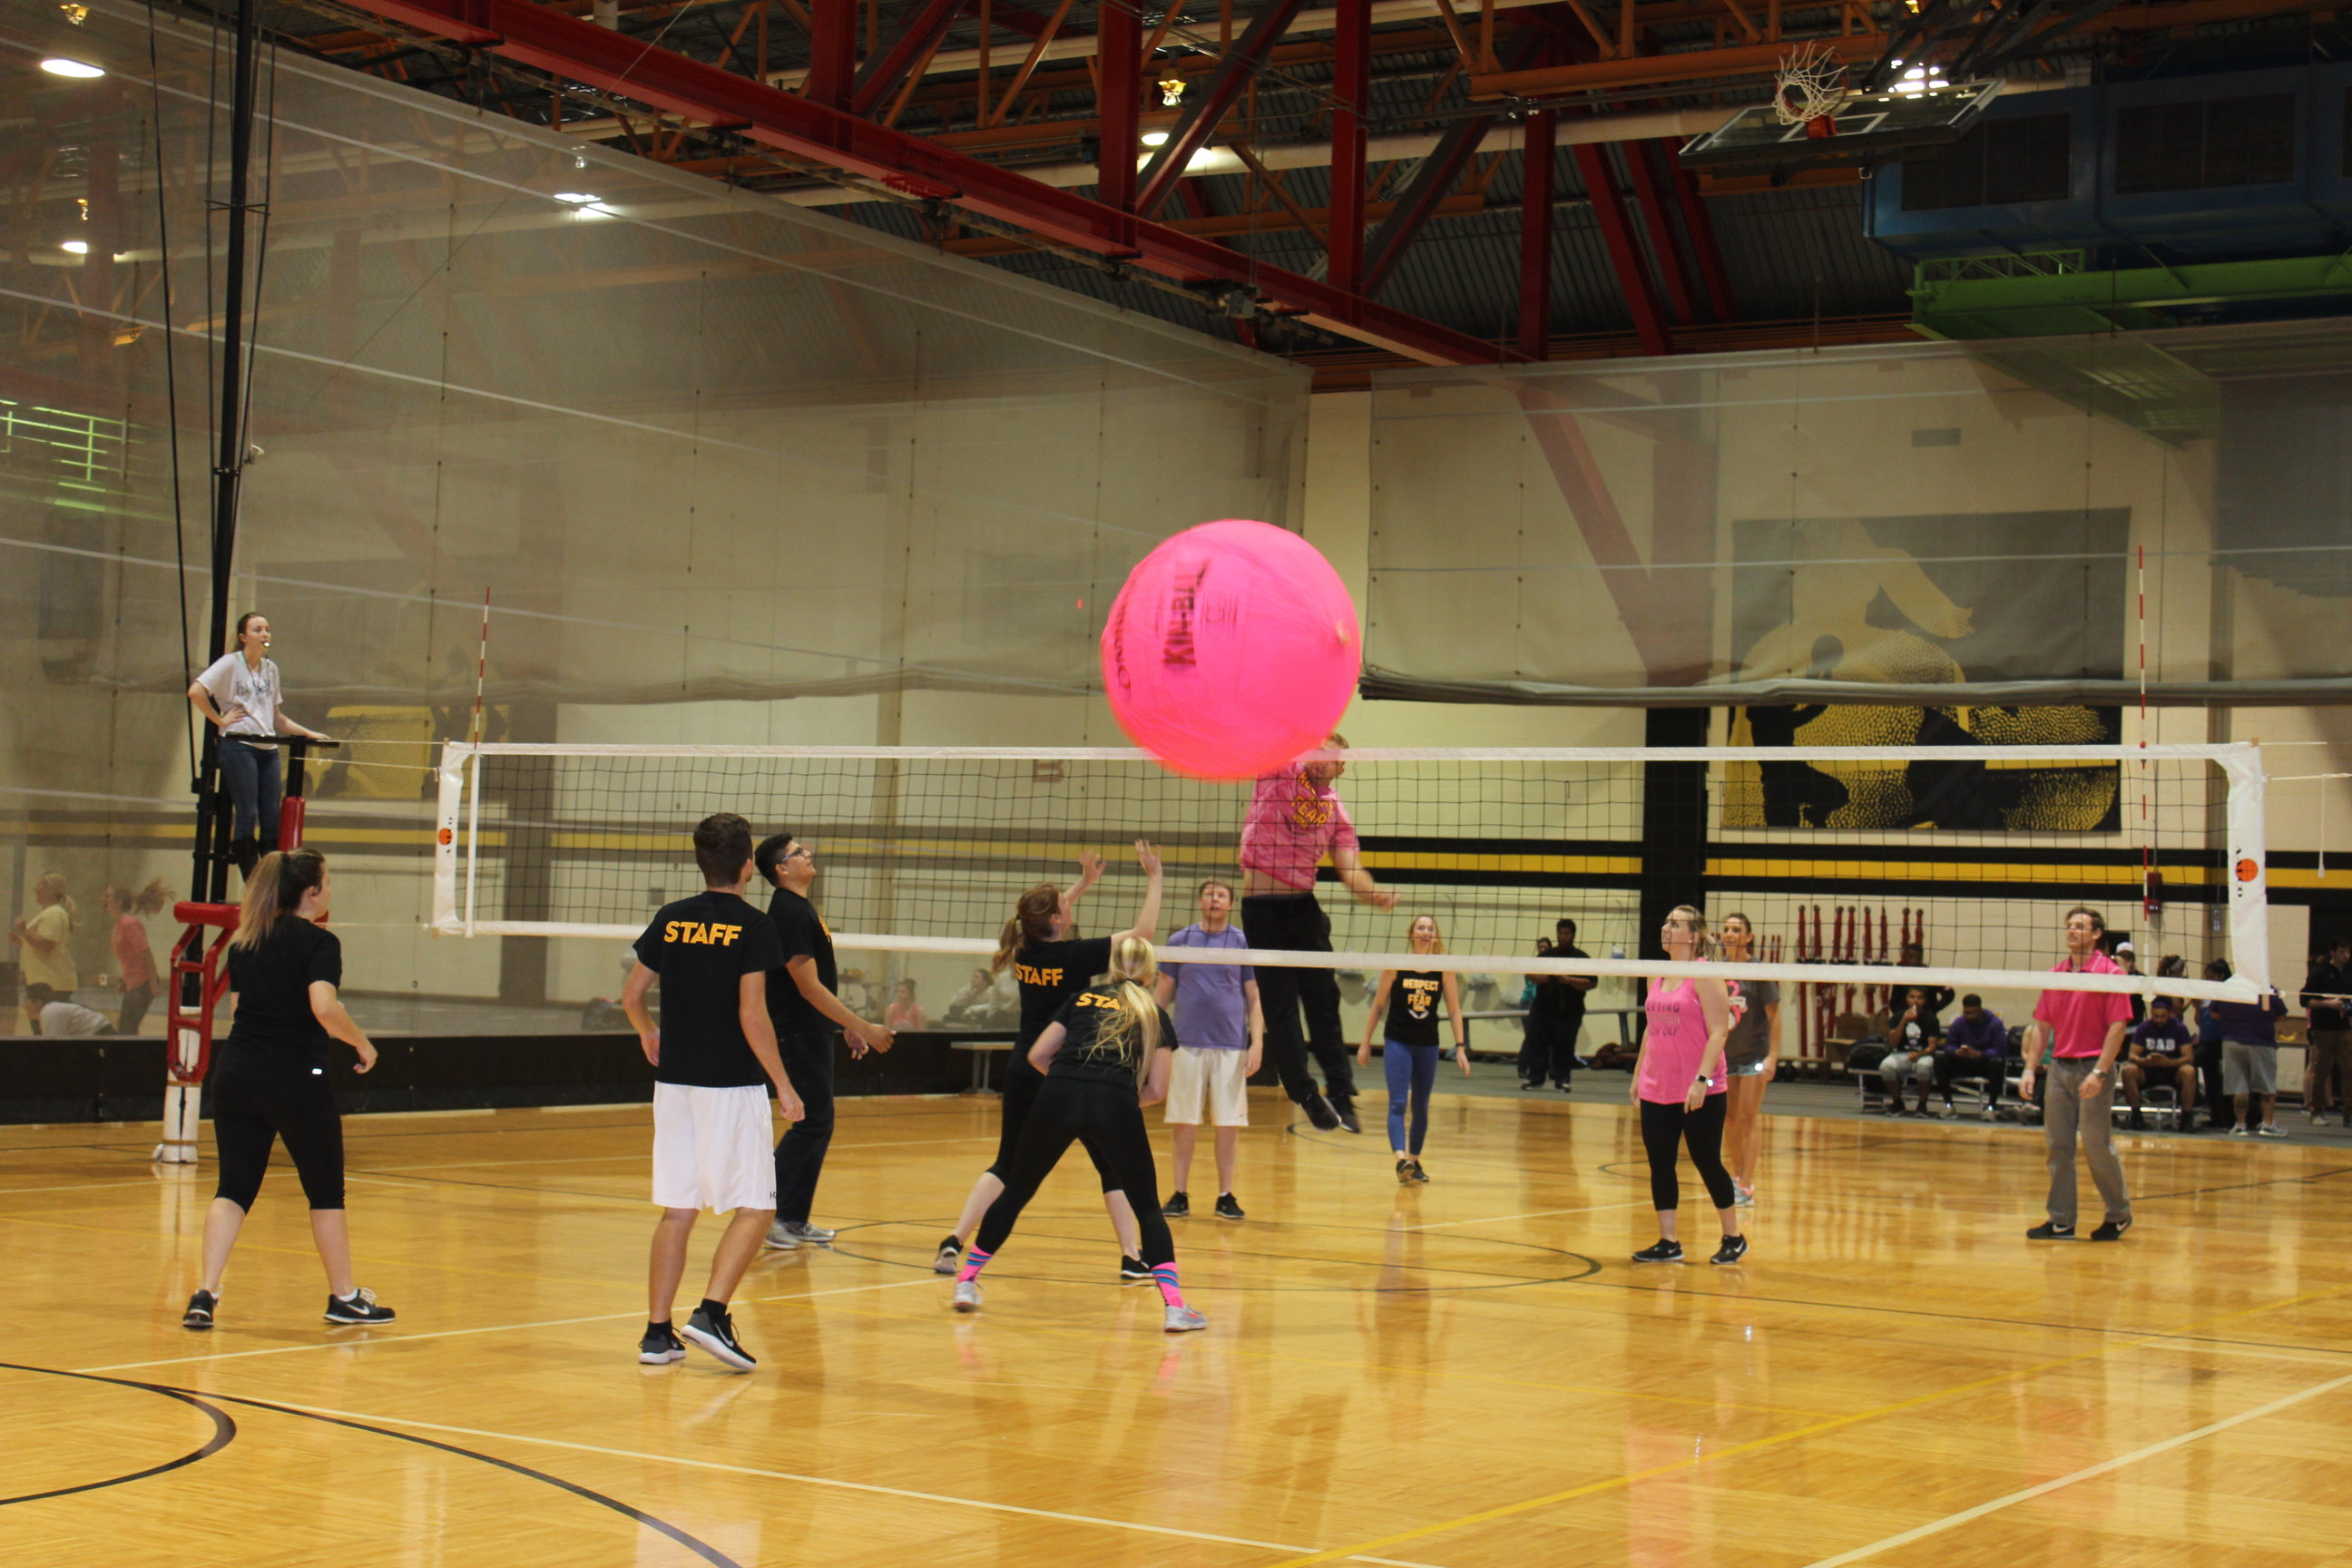 Group of people playing Big Pink Volleyball in the upstairs gym. Referee is on her feet, the ball is in the air between sides.